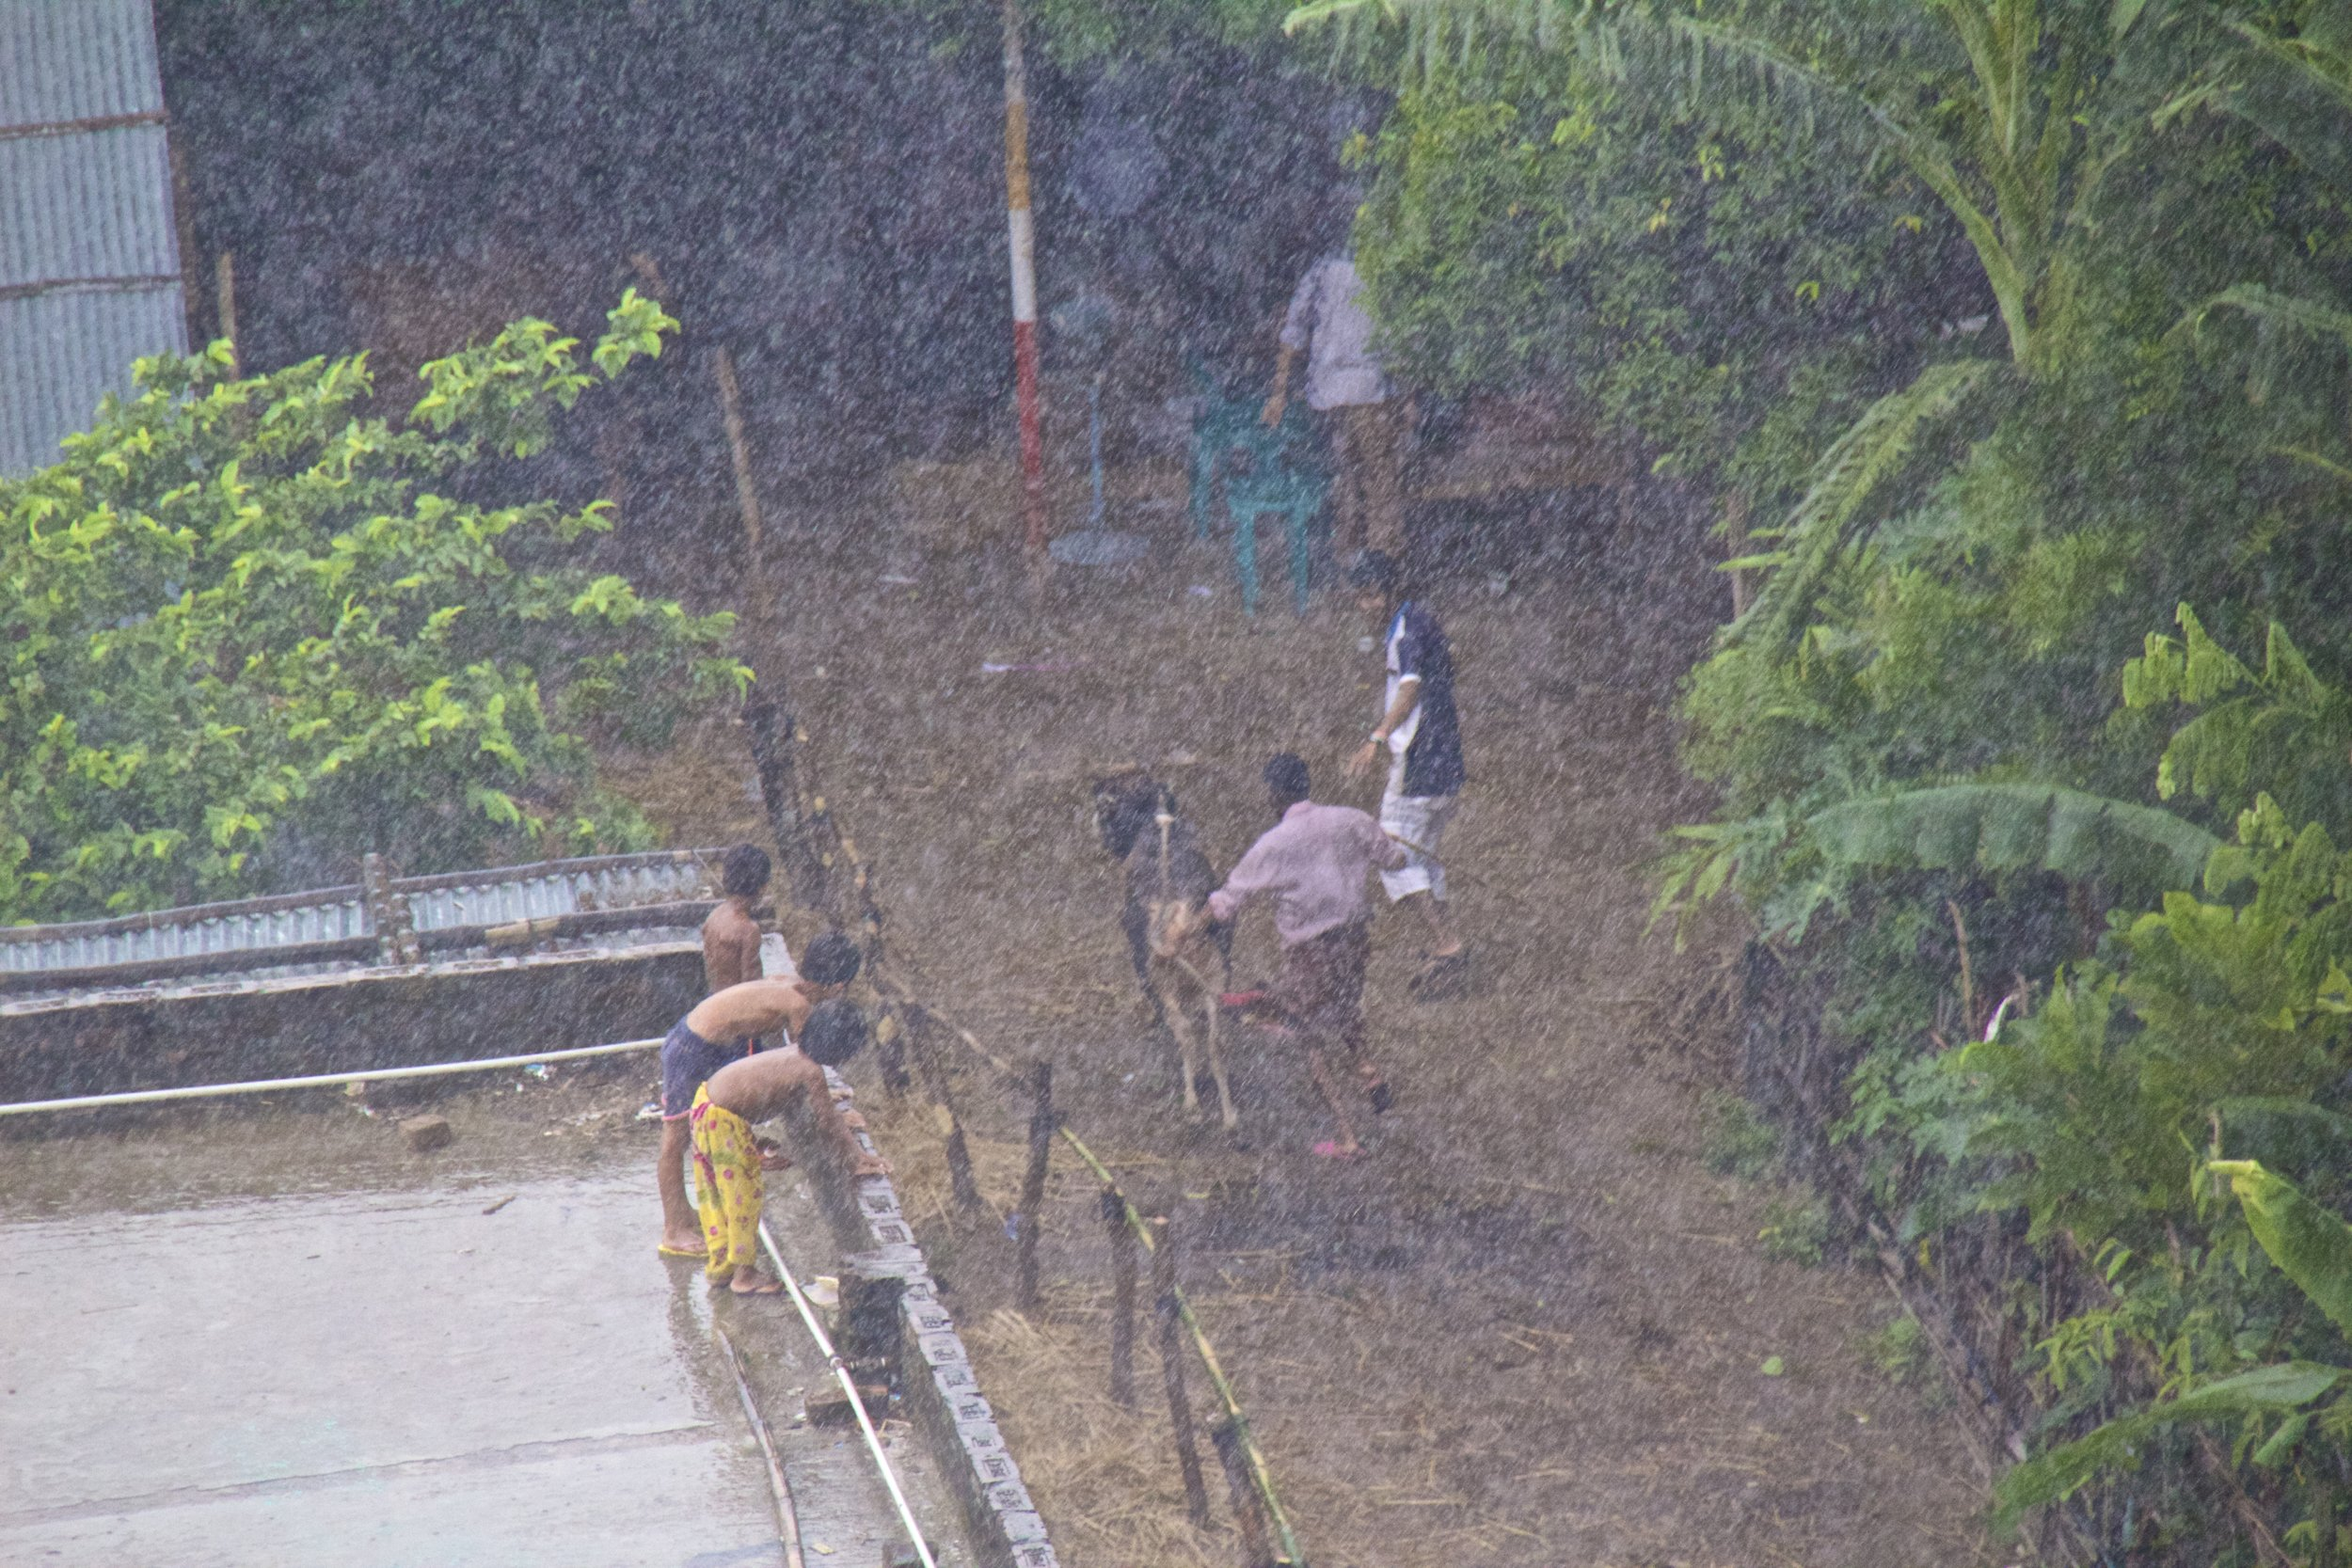 dhaka bangladesh slums monsoon rain 1.jpg